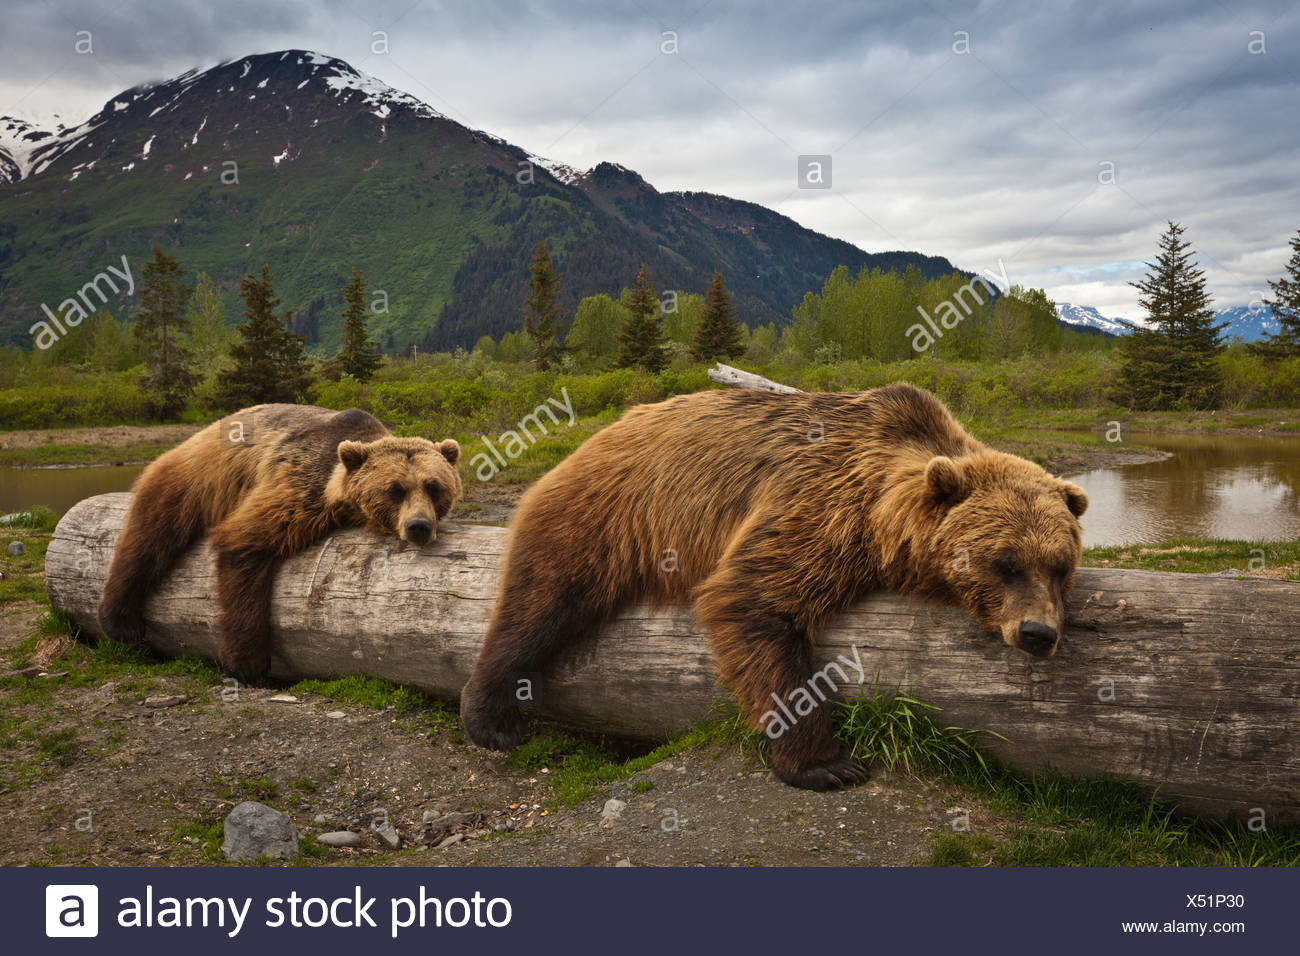 CAPTIVE: Two mature Brown bears lay stretched out on a log at Alaska Wildlife Conservation Center, Southcentral Alaska, Summer - Stock Image